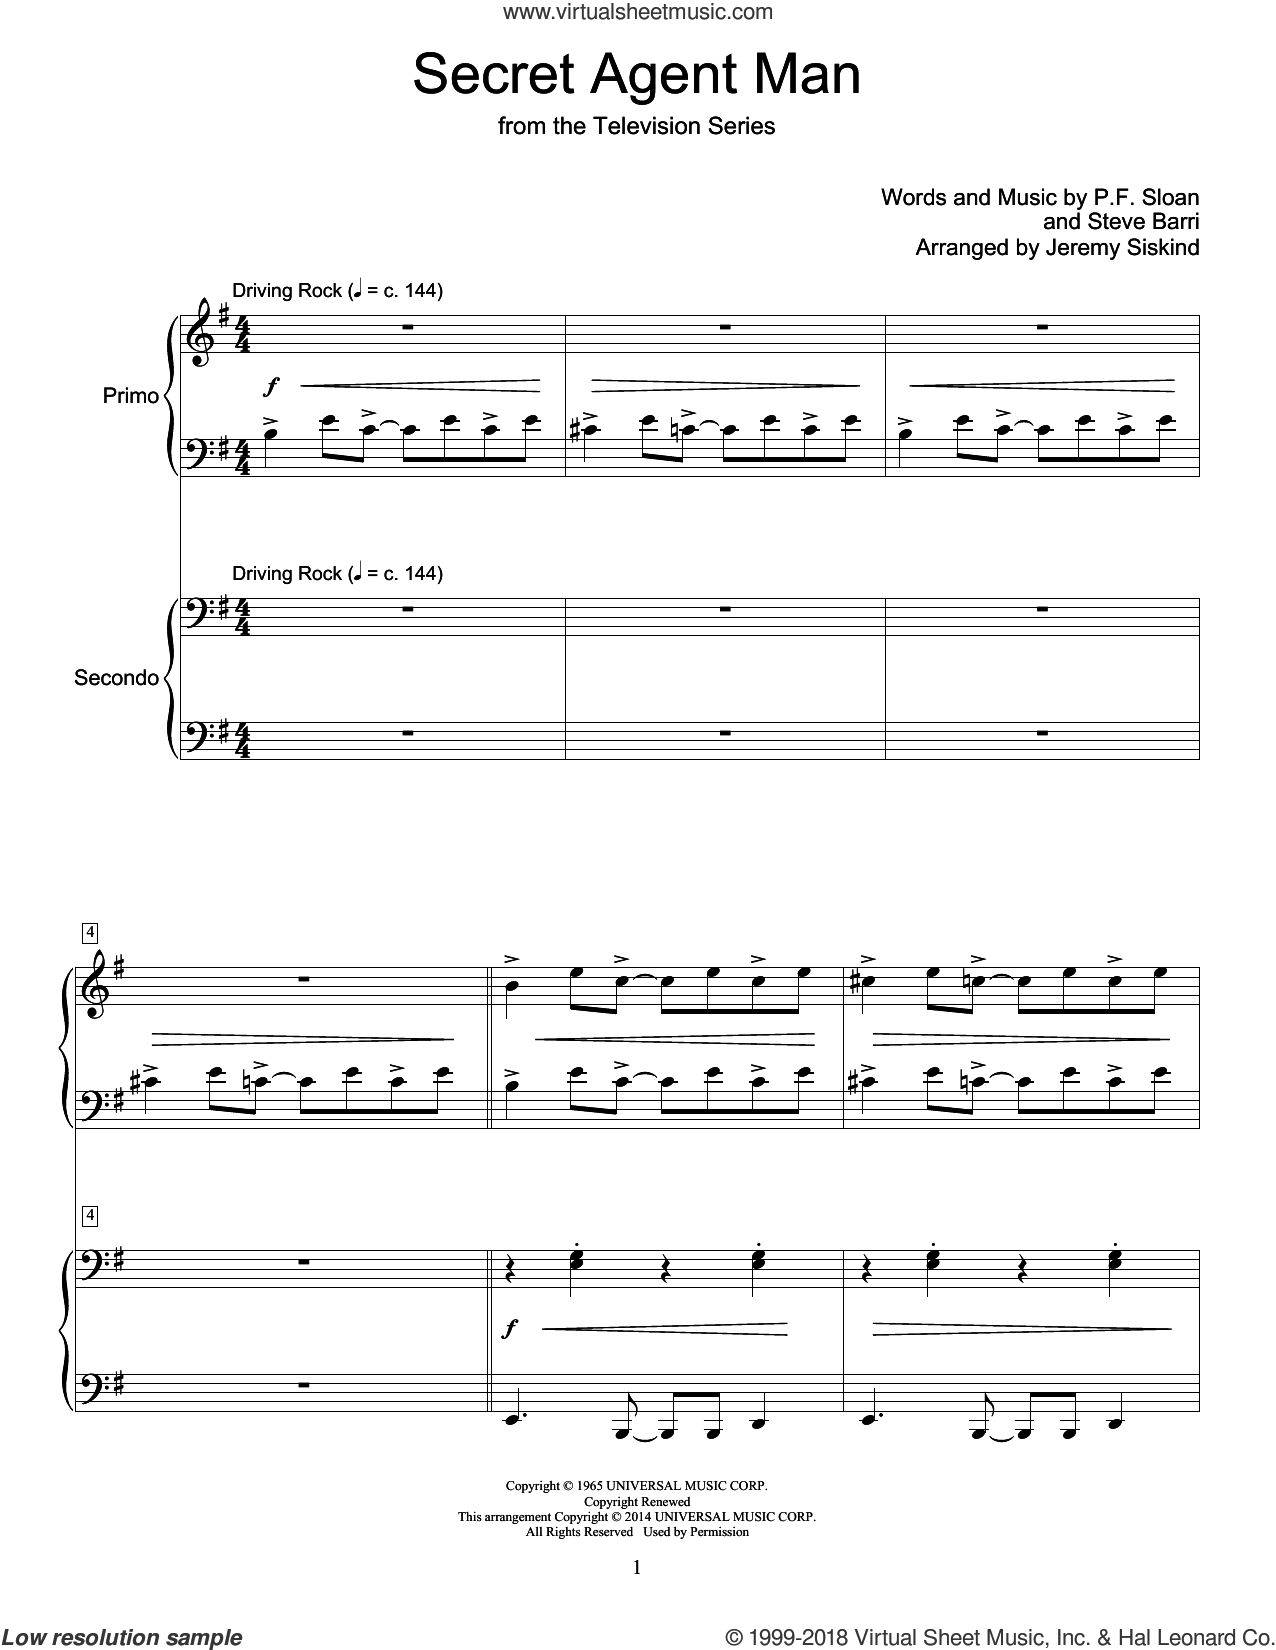 Secret Agent Man sheet music for piano four hands by Jeremy Siskind, Johnny Rivers, P.F. Sloan and Steve Barri, intermediate skill level